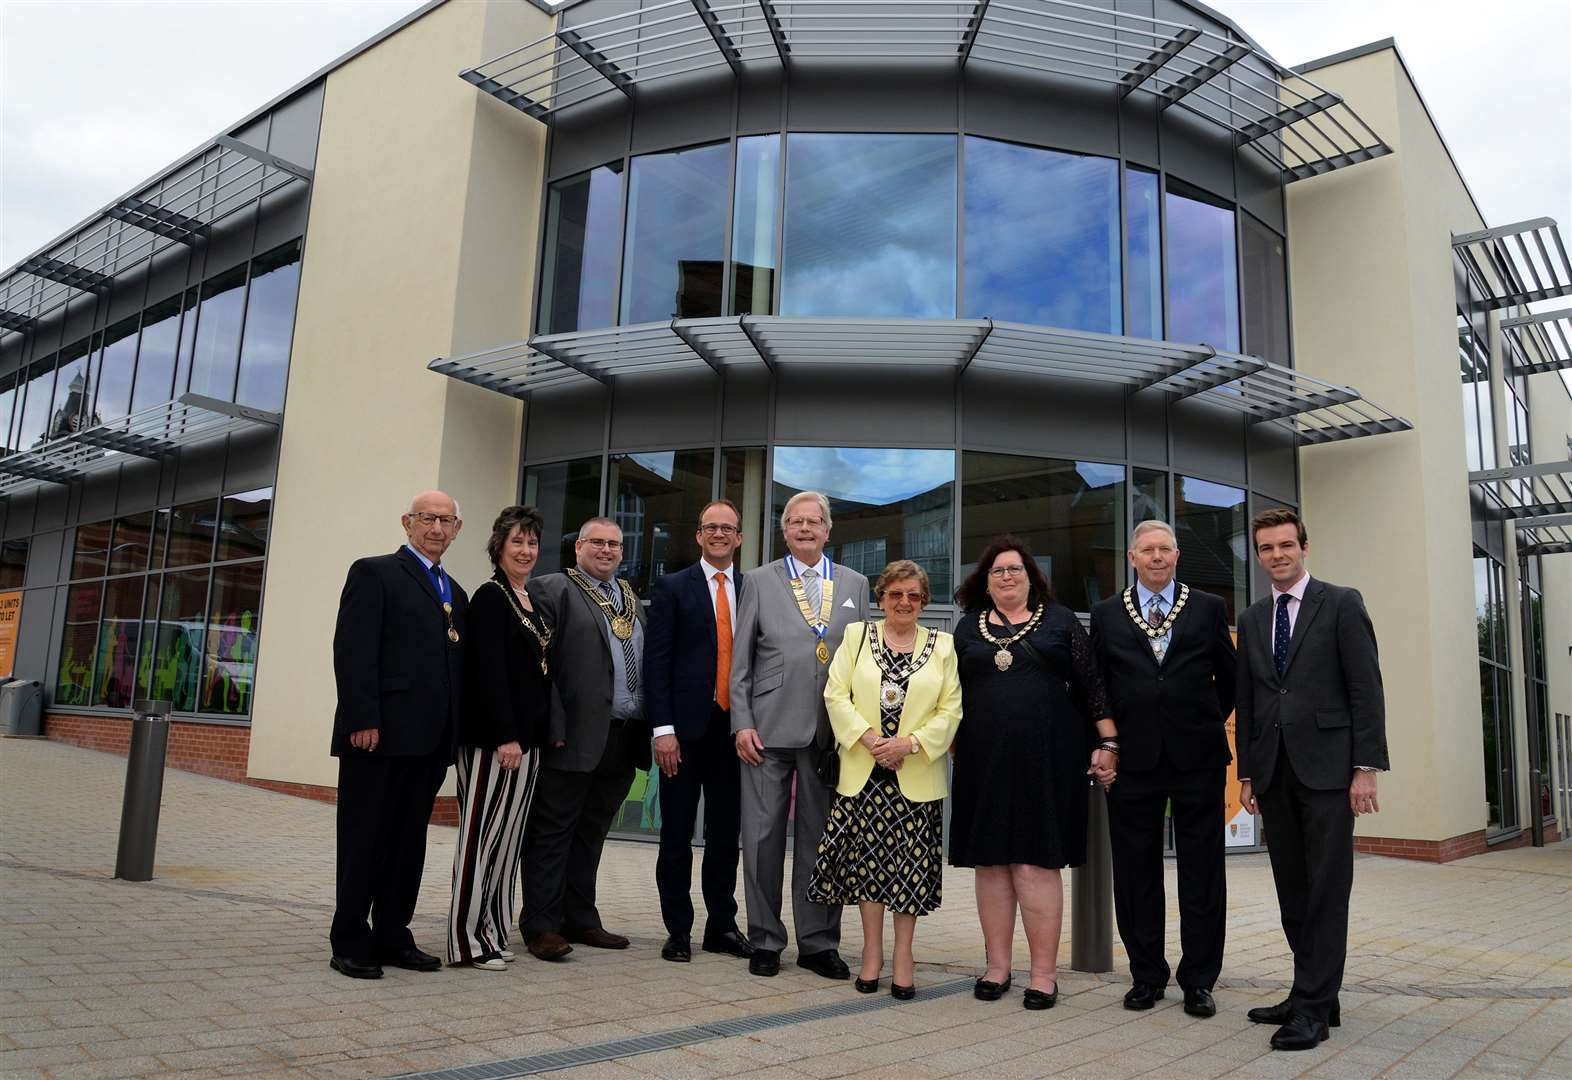 New Savoy cinema is launched in Grantham